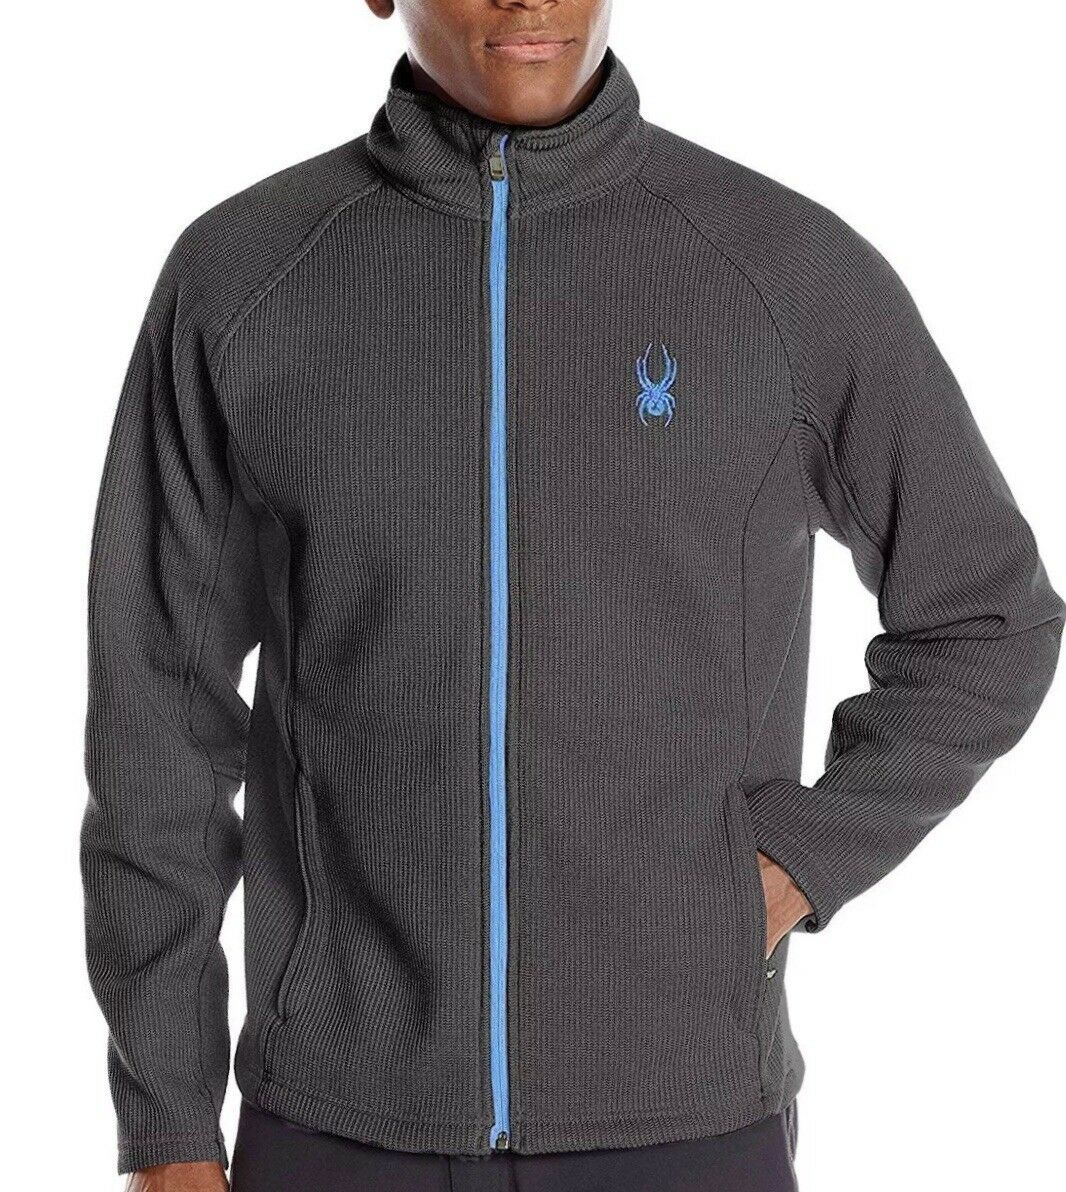 NEW Spyder Mens sz  XL, Constant Full Zip Mid Weight Stryke Fleece SALE,reg  139  for your style of play at the cheapest prices